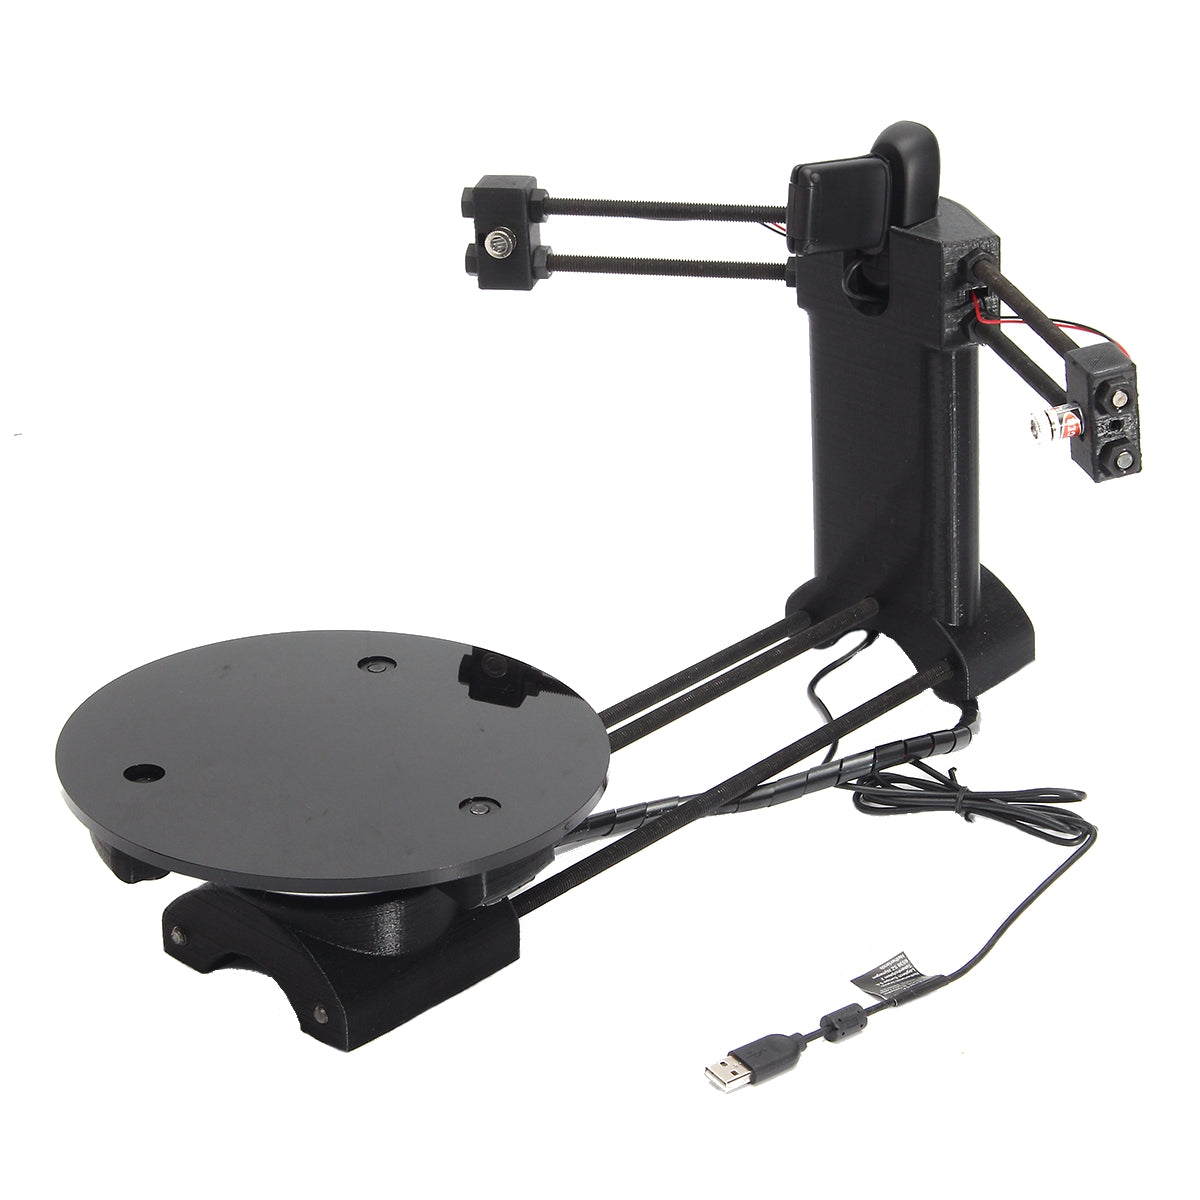 3D Laser Scanner Adapter Plate For Ciclop 3D Printer